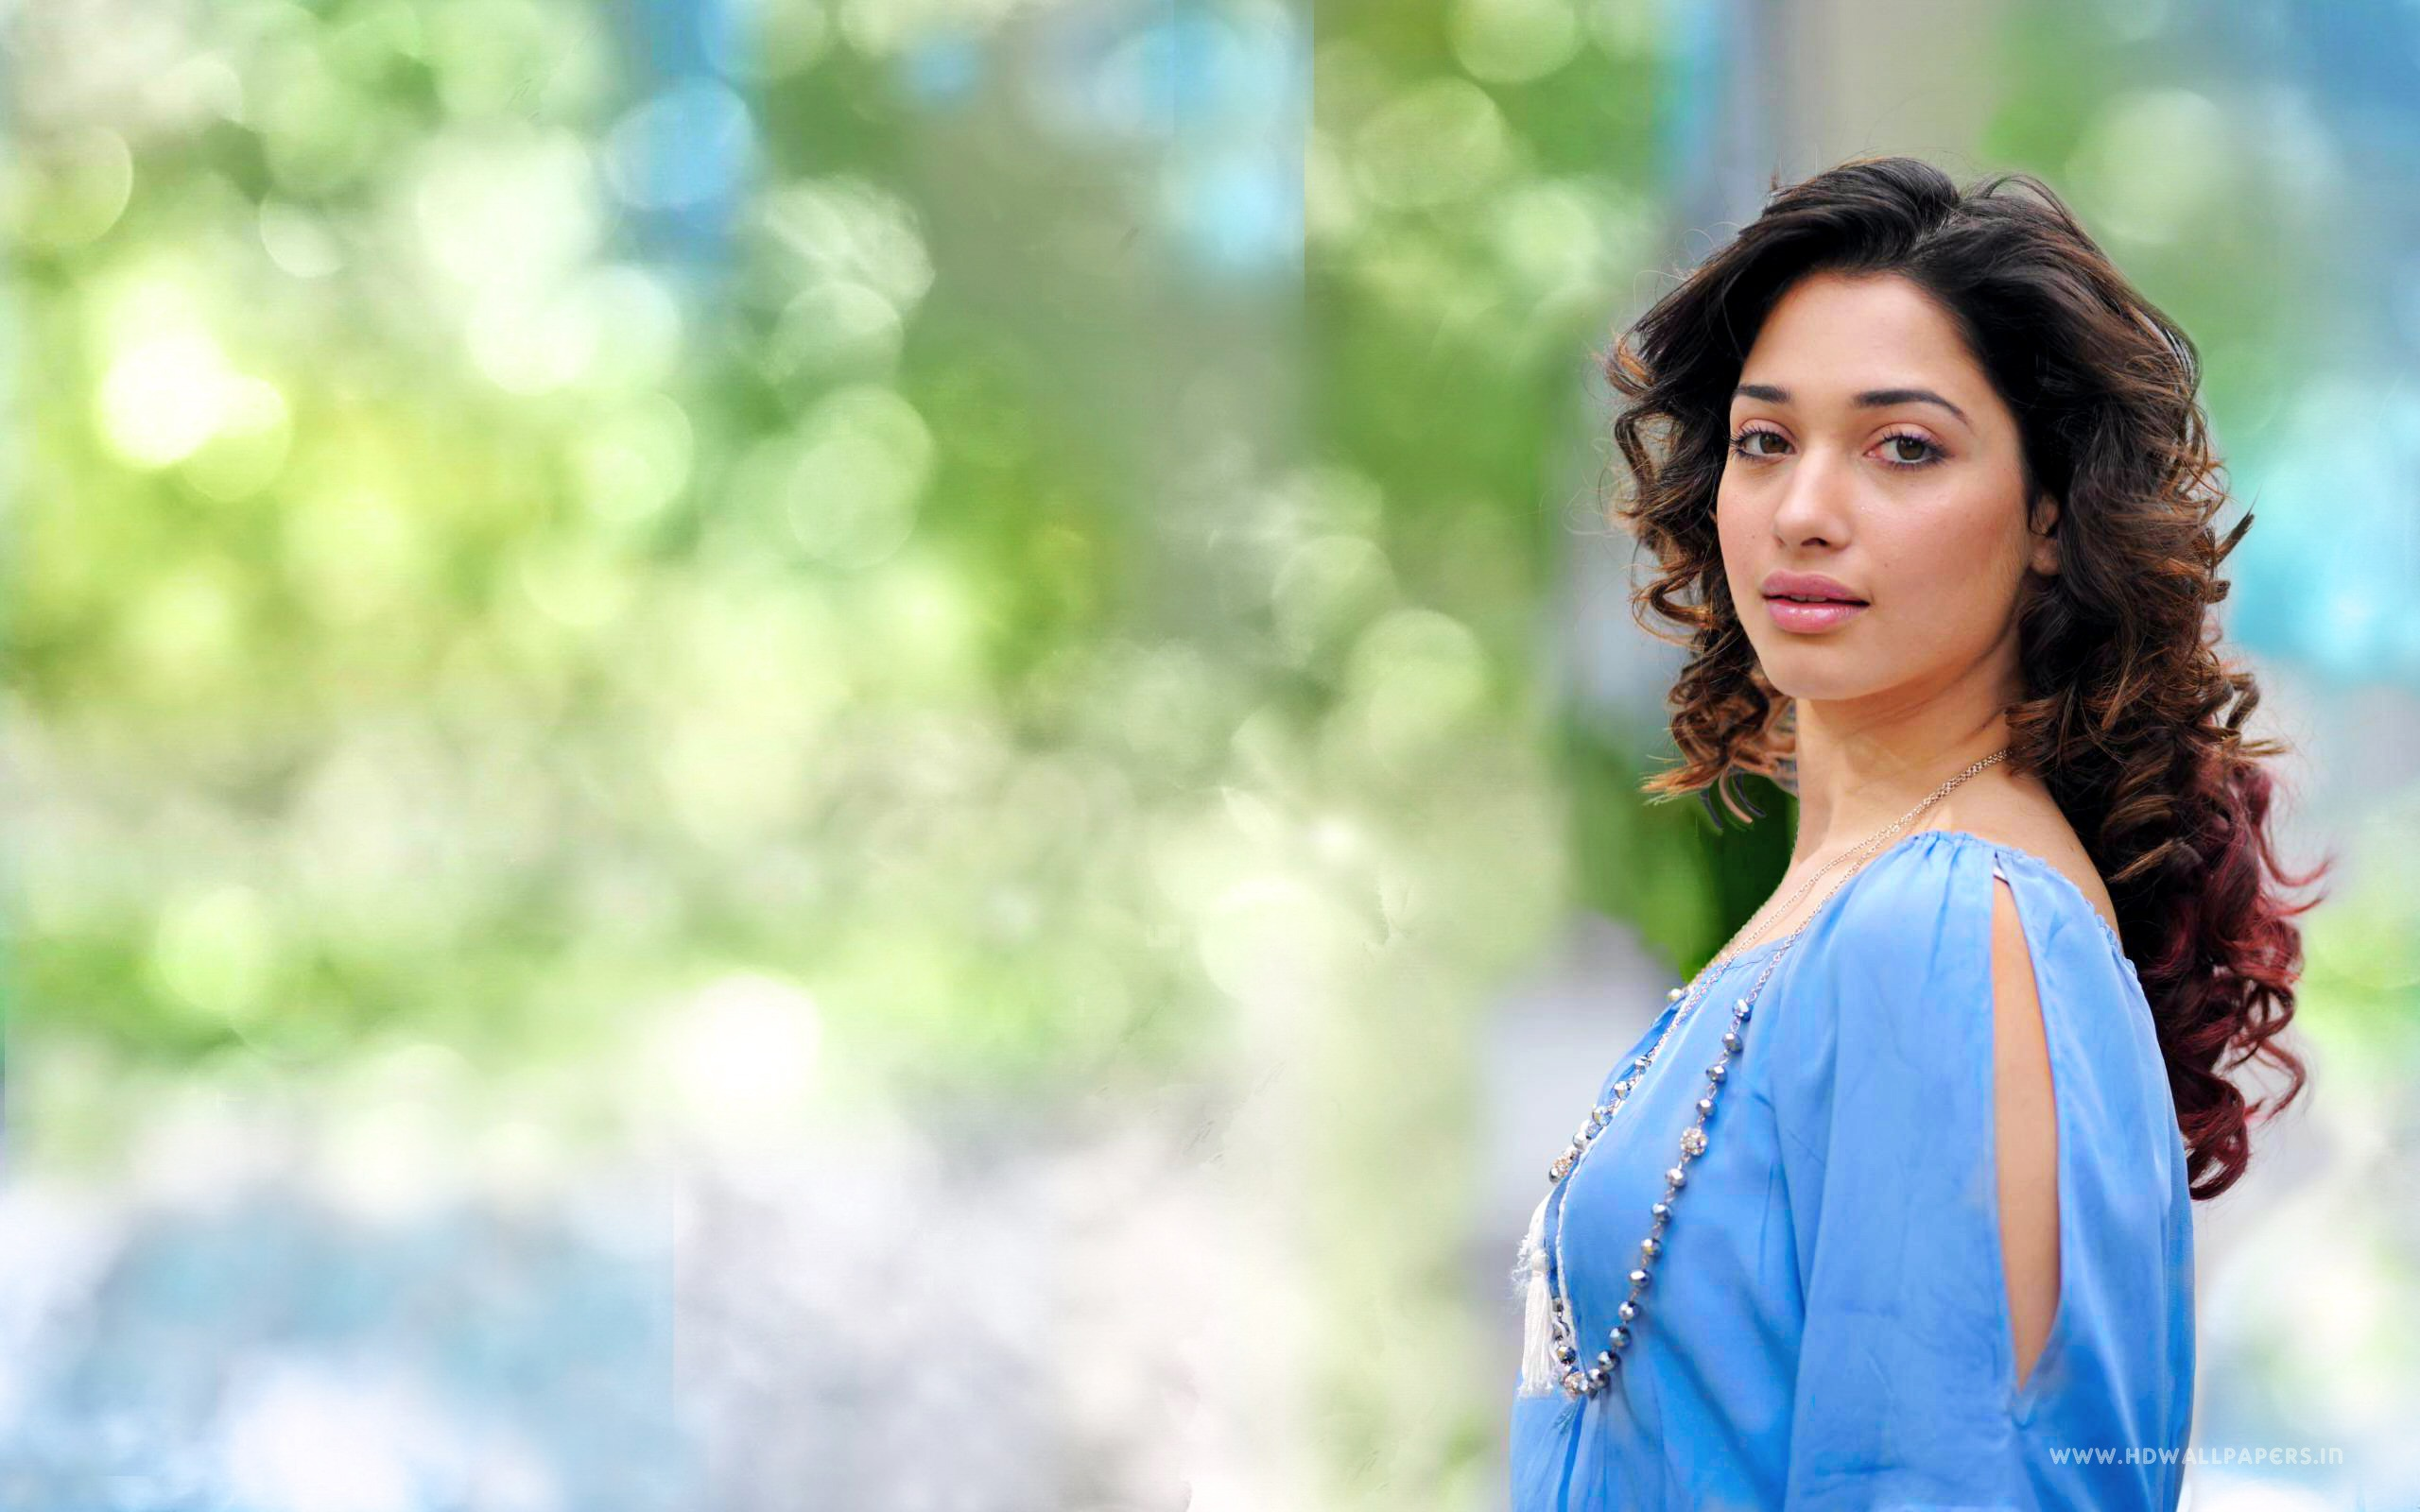 actress tamanna wallpapers in jpg format for free download